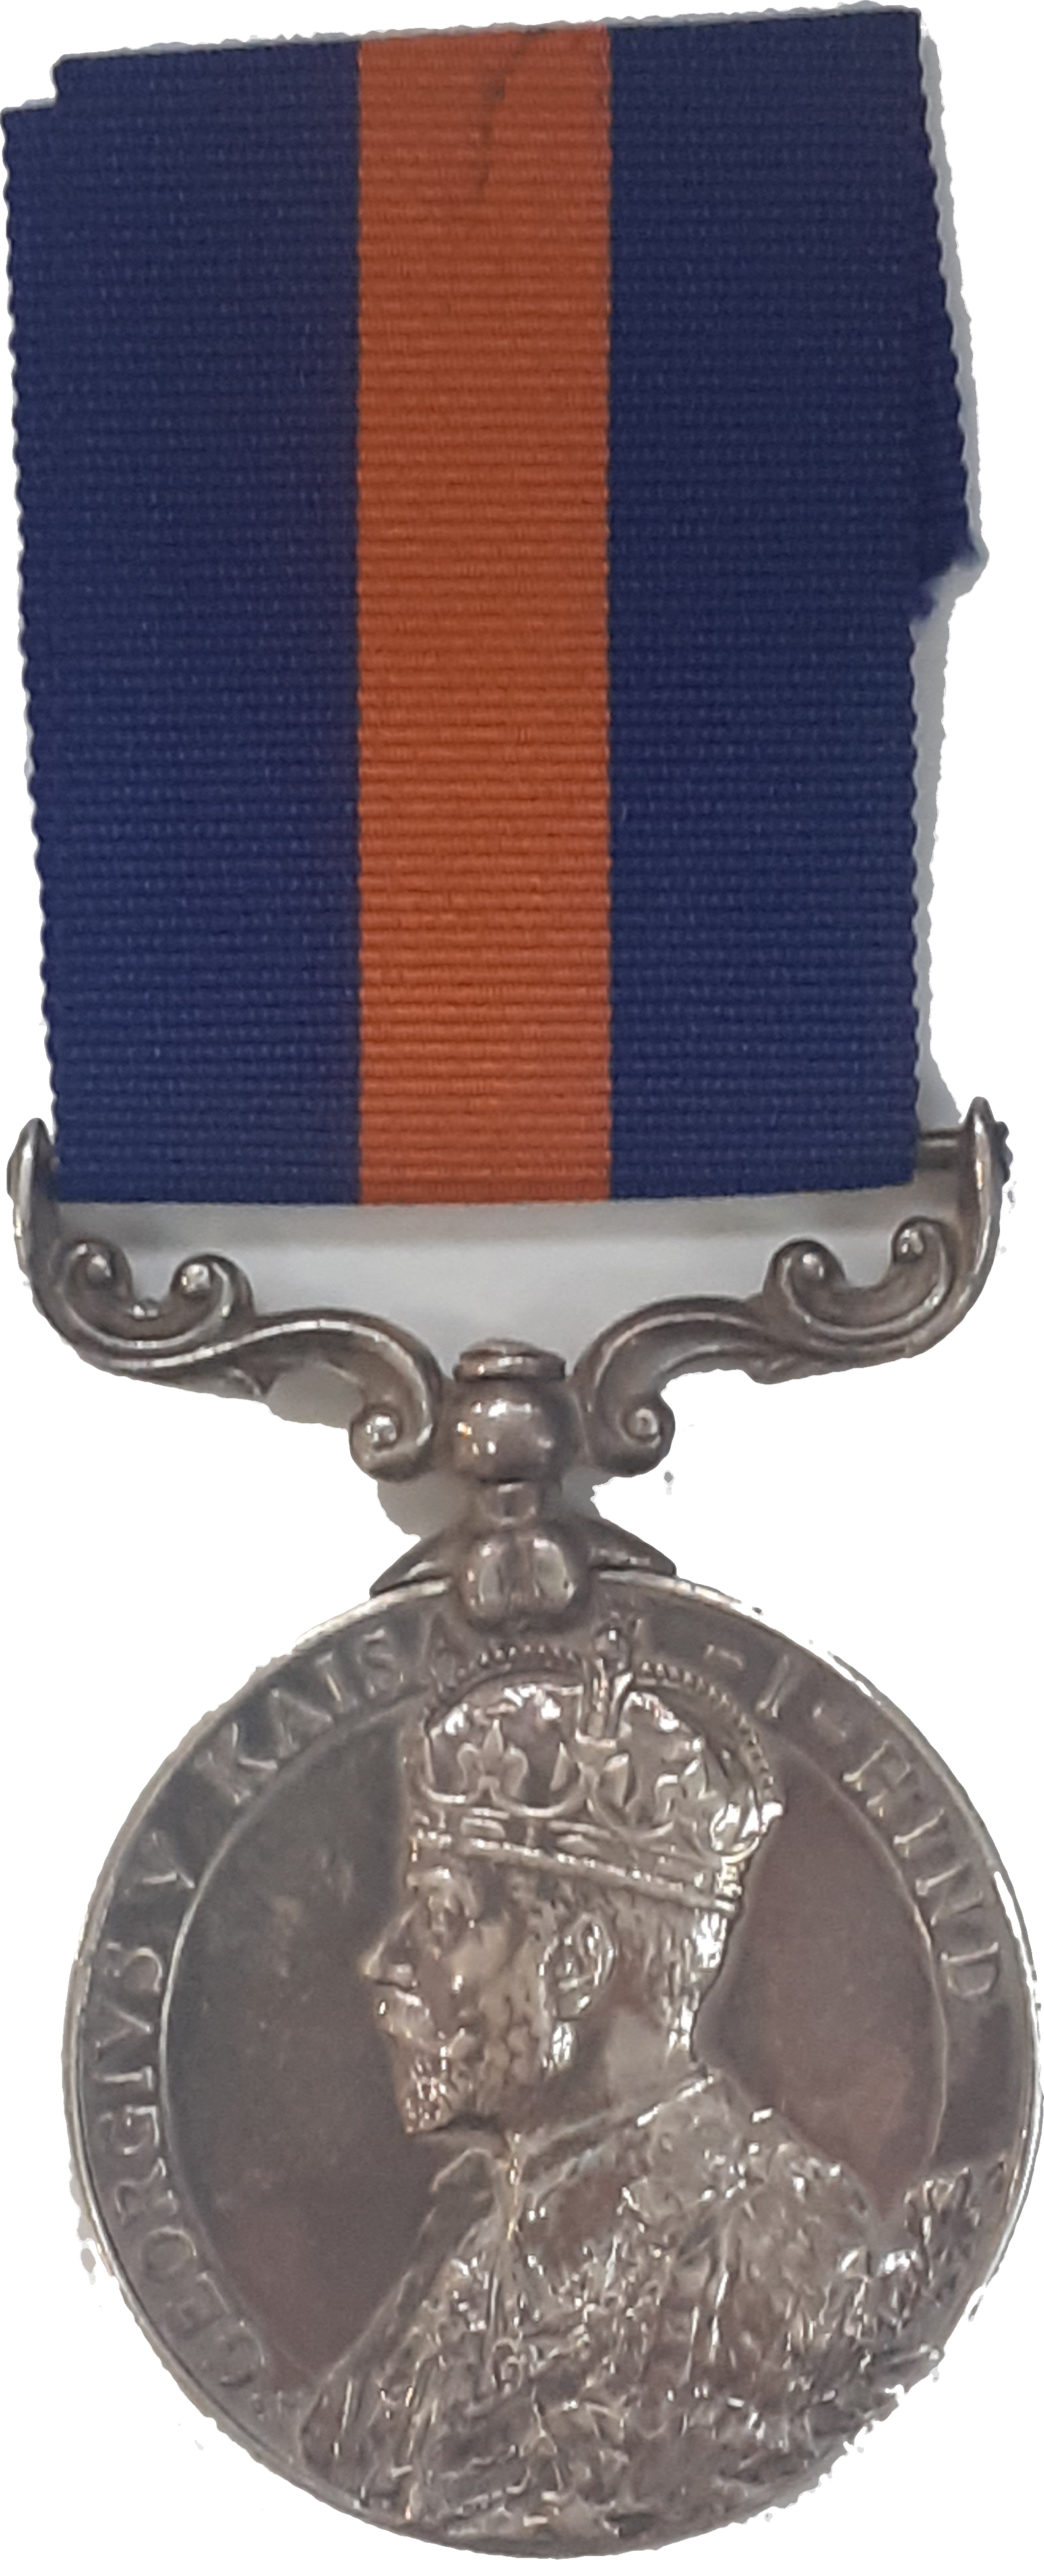 An Egypt Theatre Indian Distinguished Service Medal to Daffadar Fateh Khan